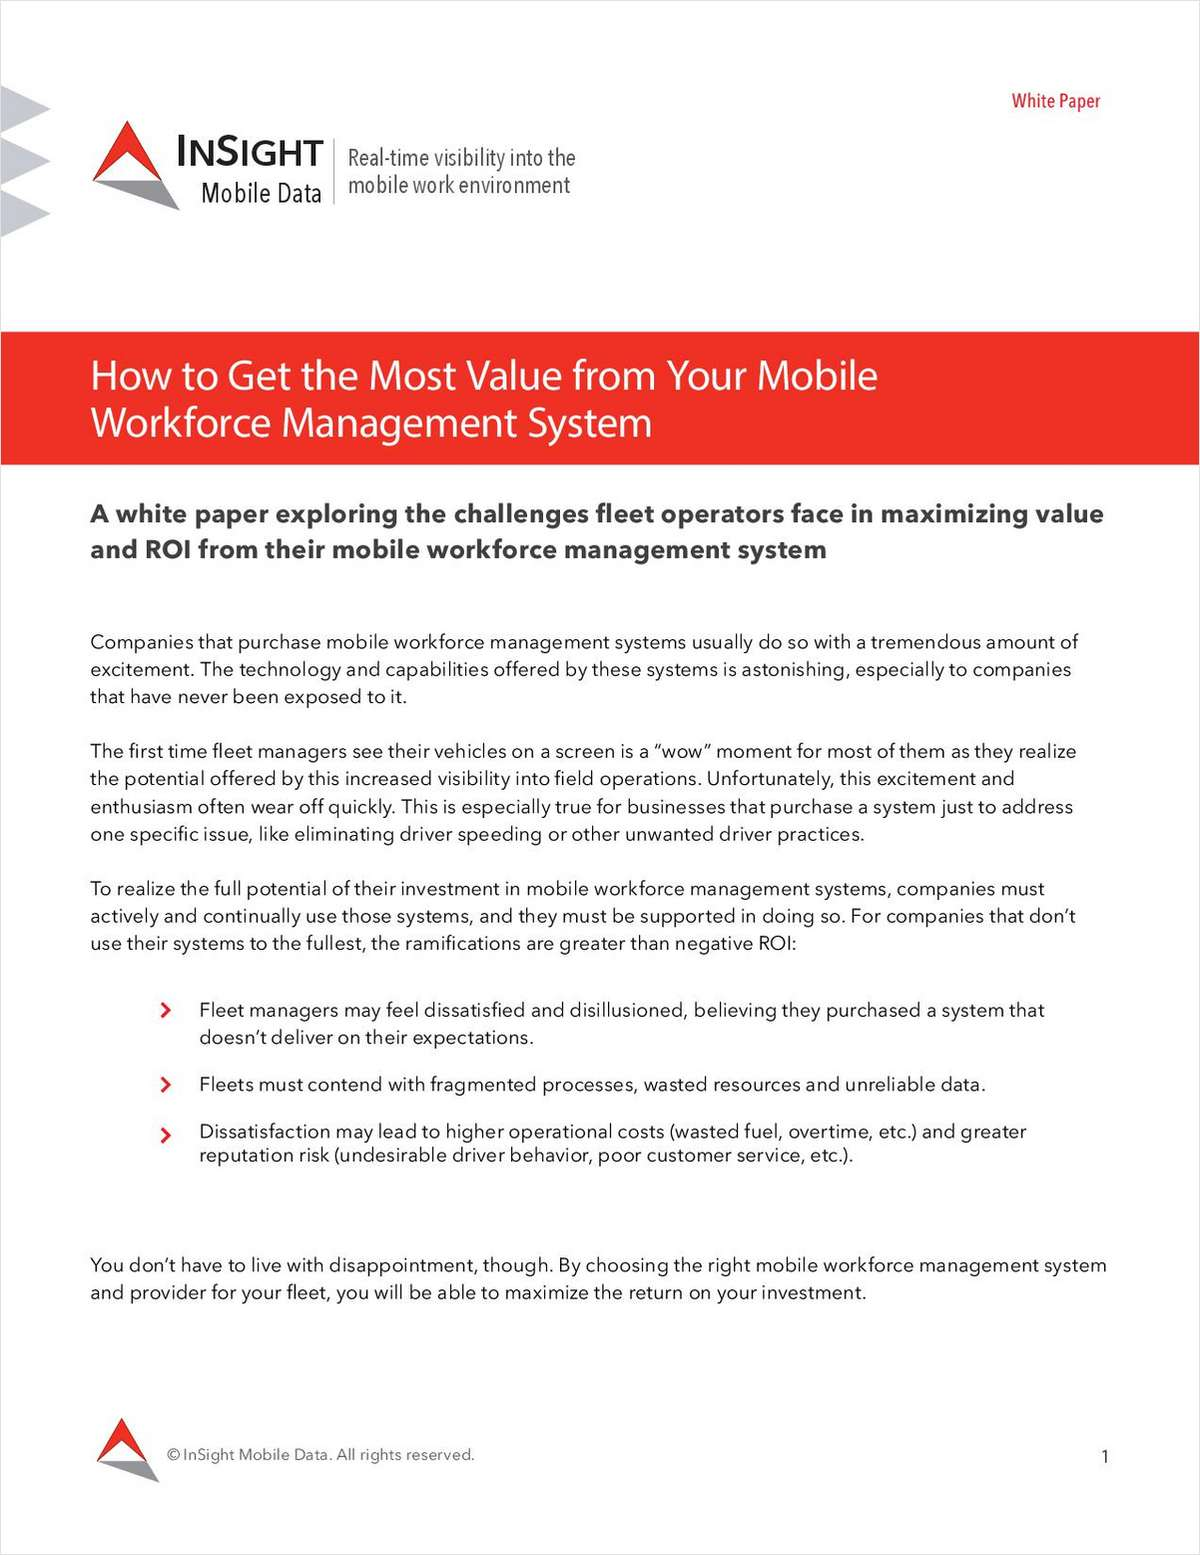 How to Get the Most Value from Your Mobile Workforce Management System